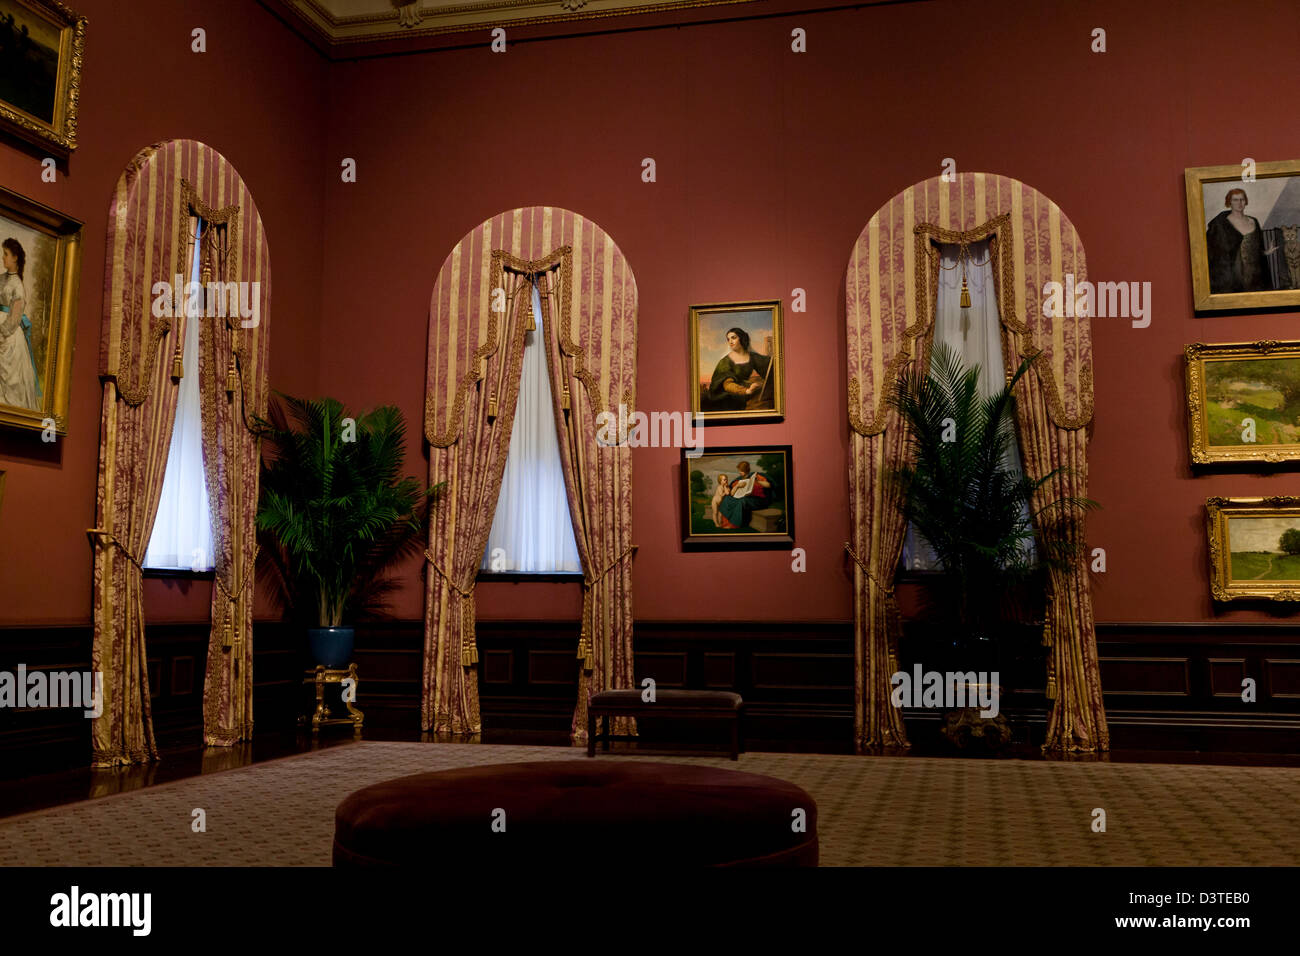 Art gallery window fixtures and curtains - USA - Stock Image